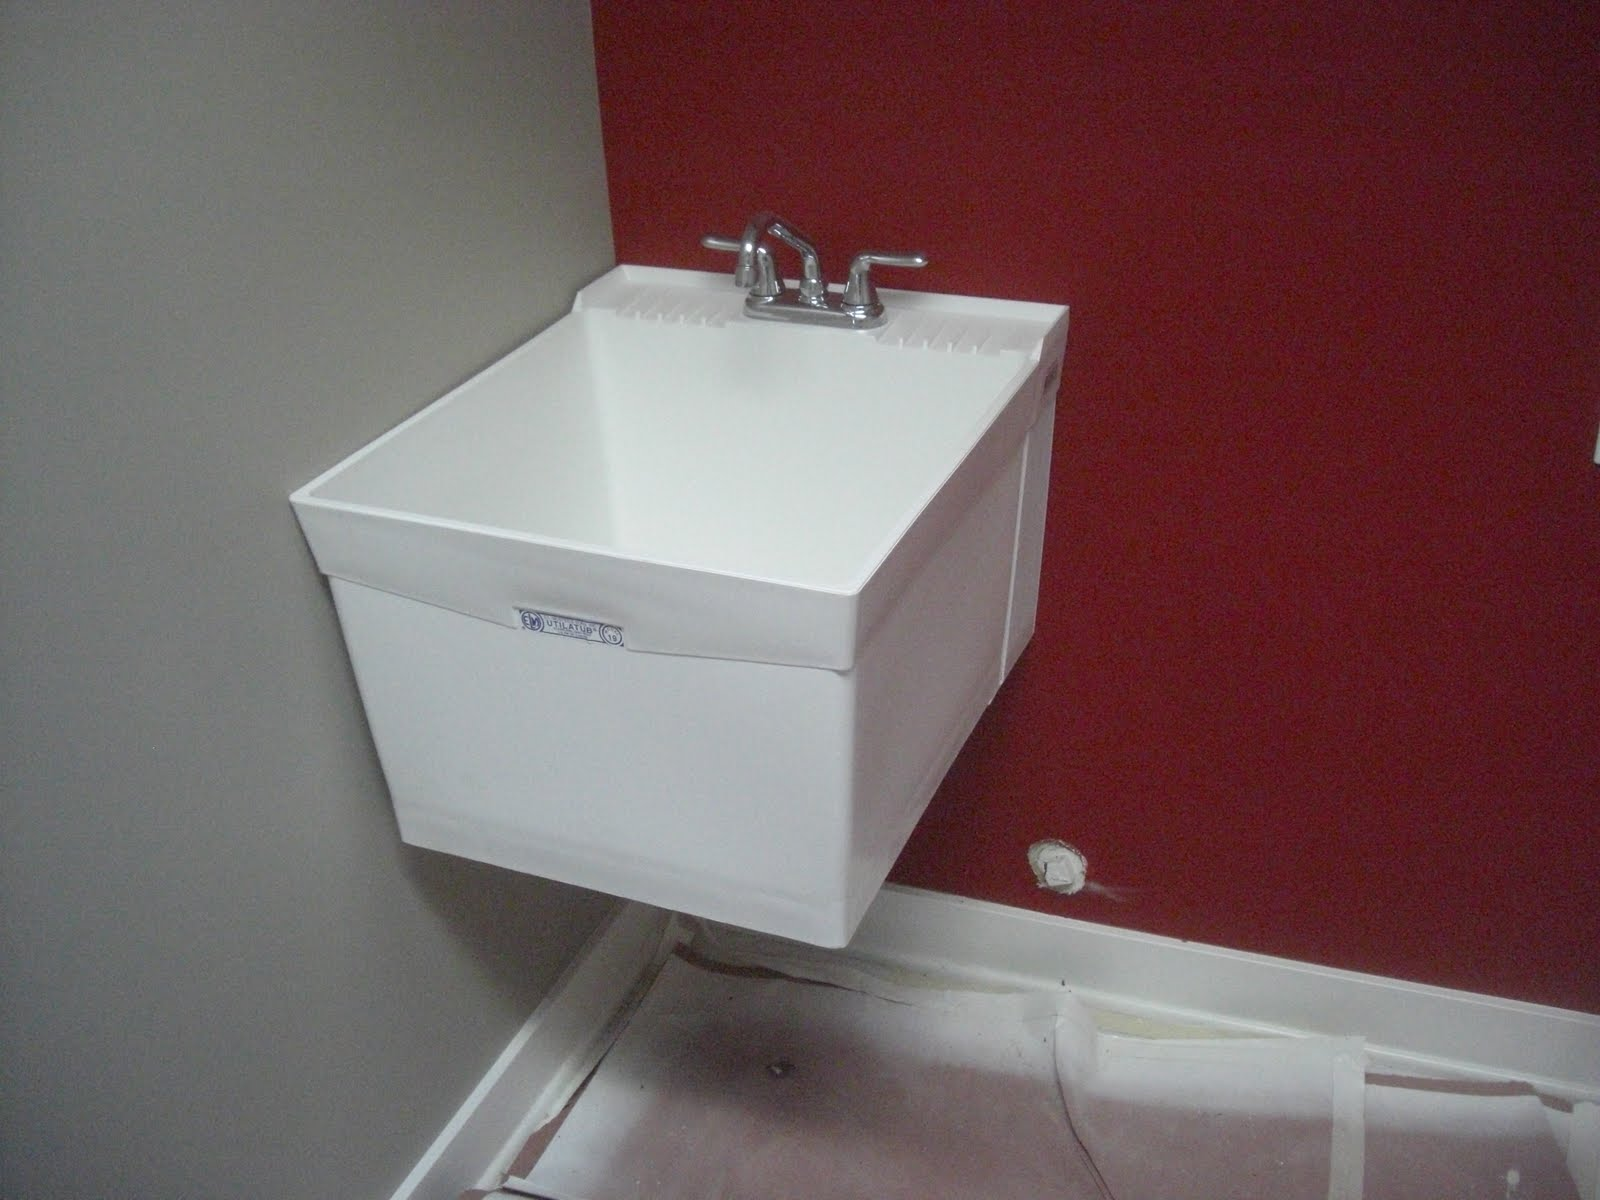 Laundry Sink Wall Mount : Here is the laundry washtub. It is wall mounted.